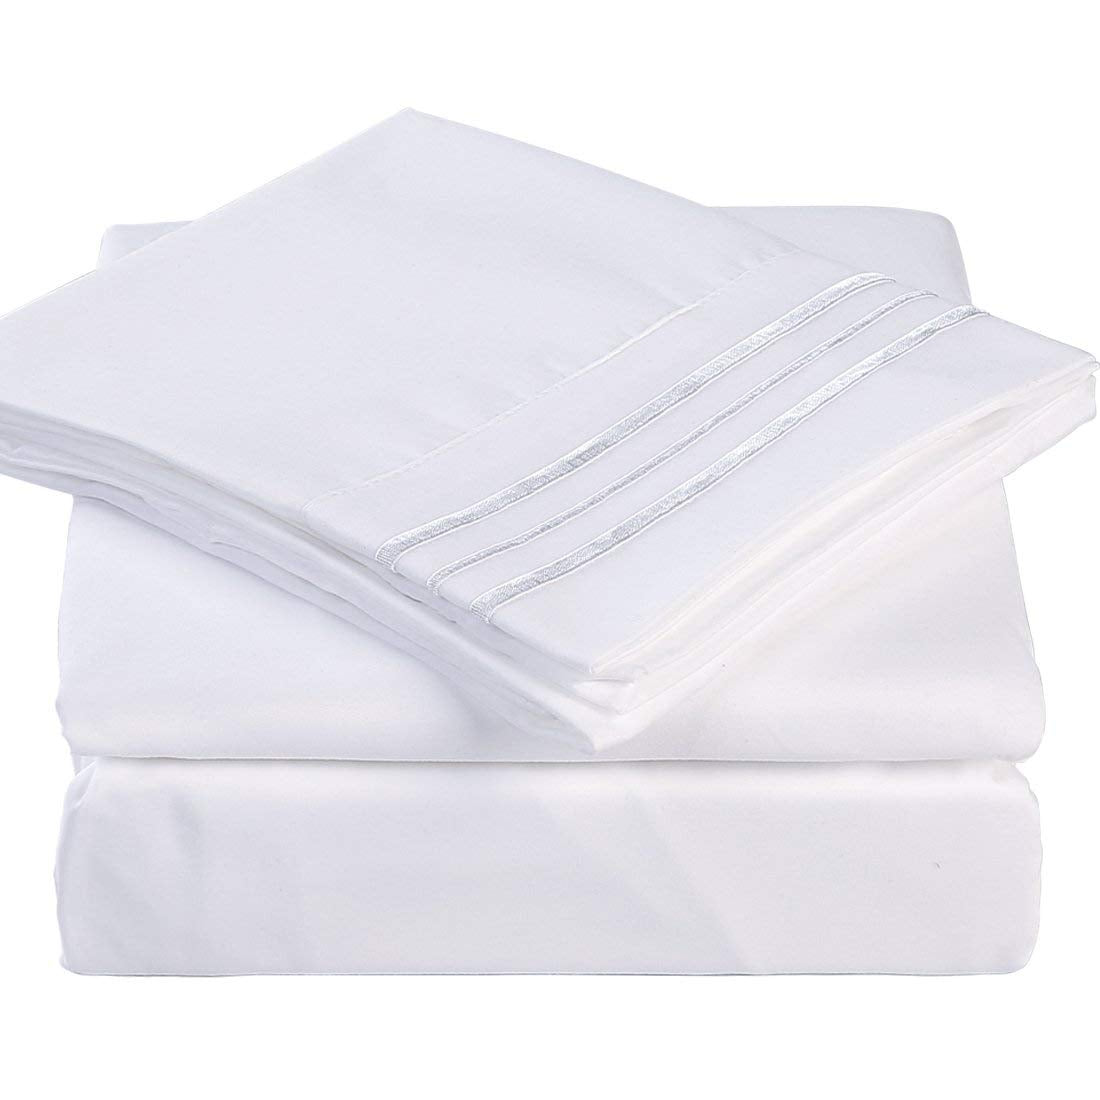 Microfiber Bed Sheet Set Made Of 1800 Thread Count 100